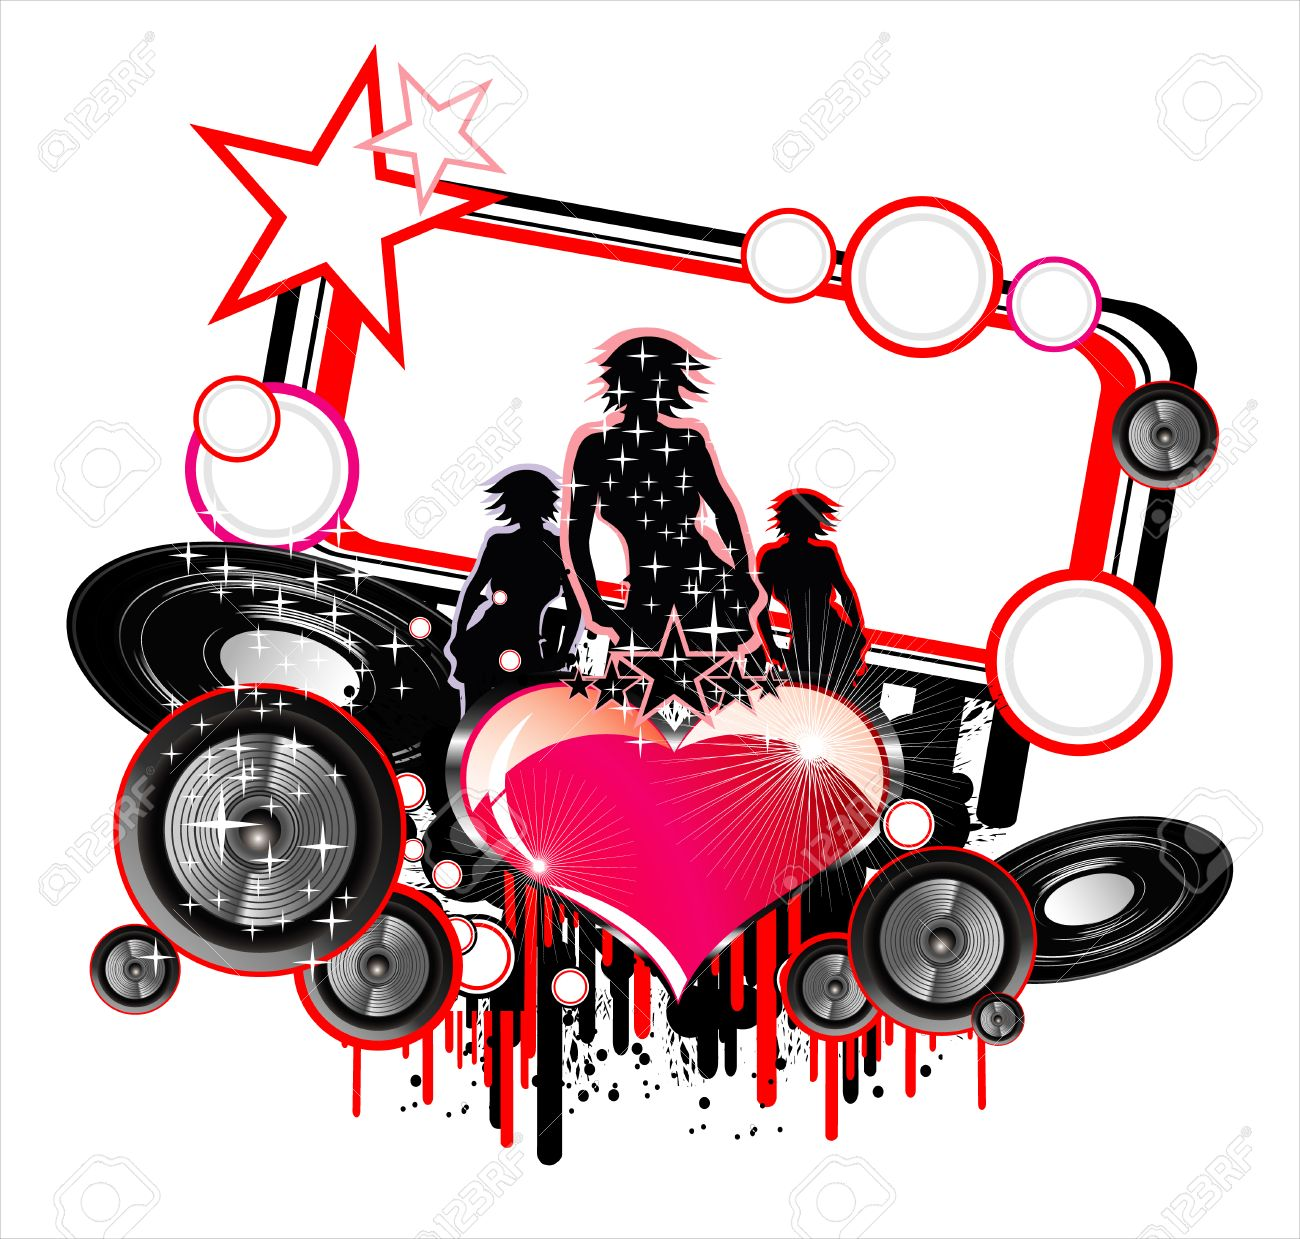 Girls and Love music event frame background Stock Vector - 4896767